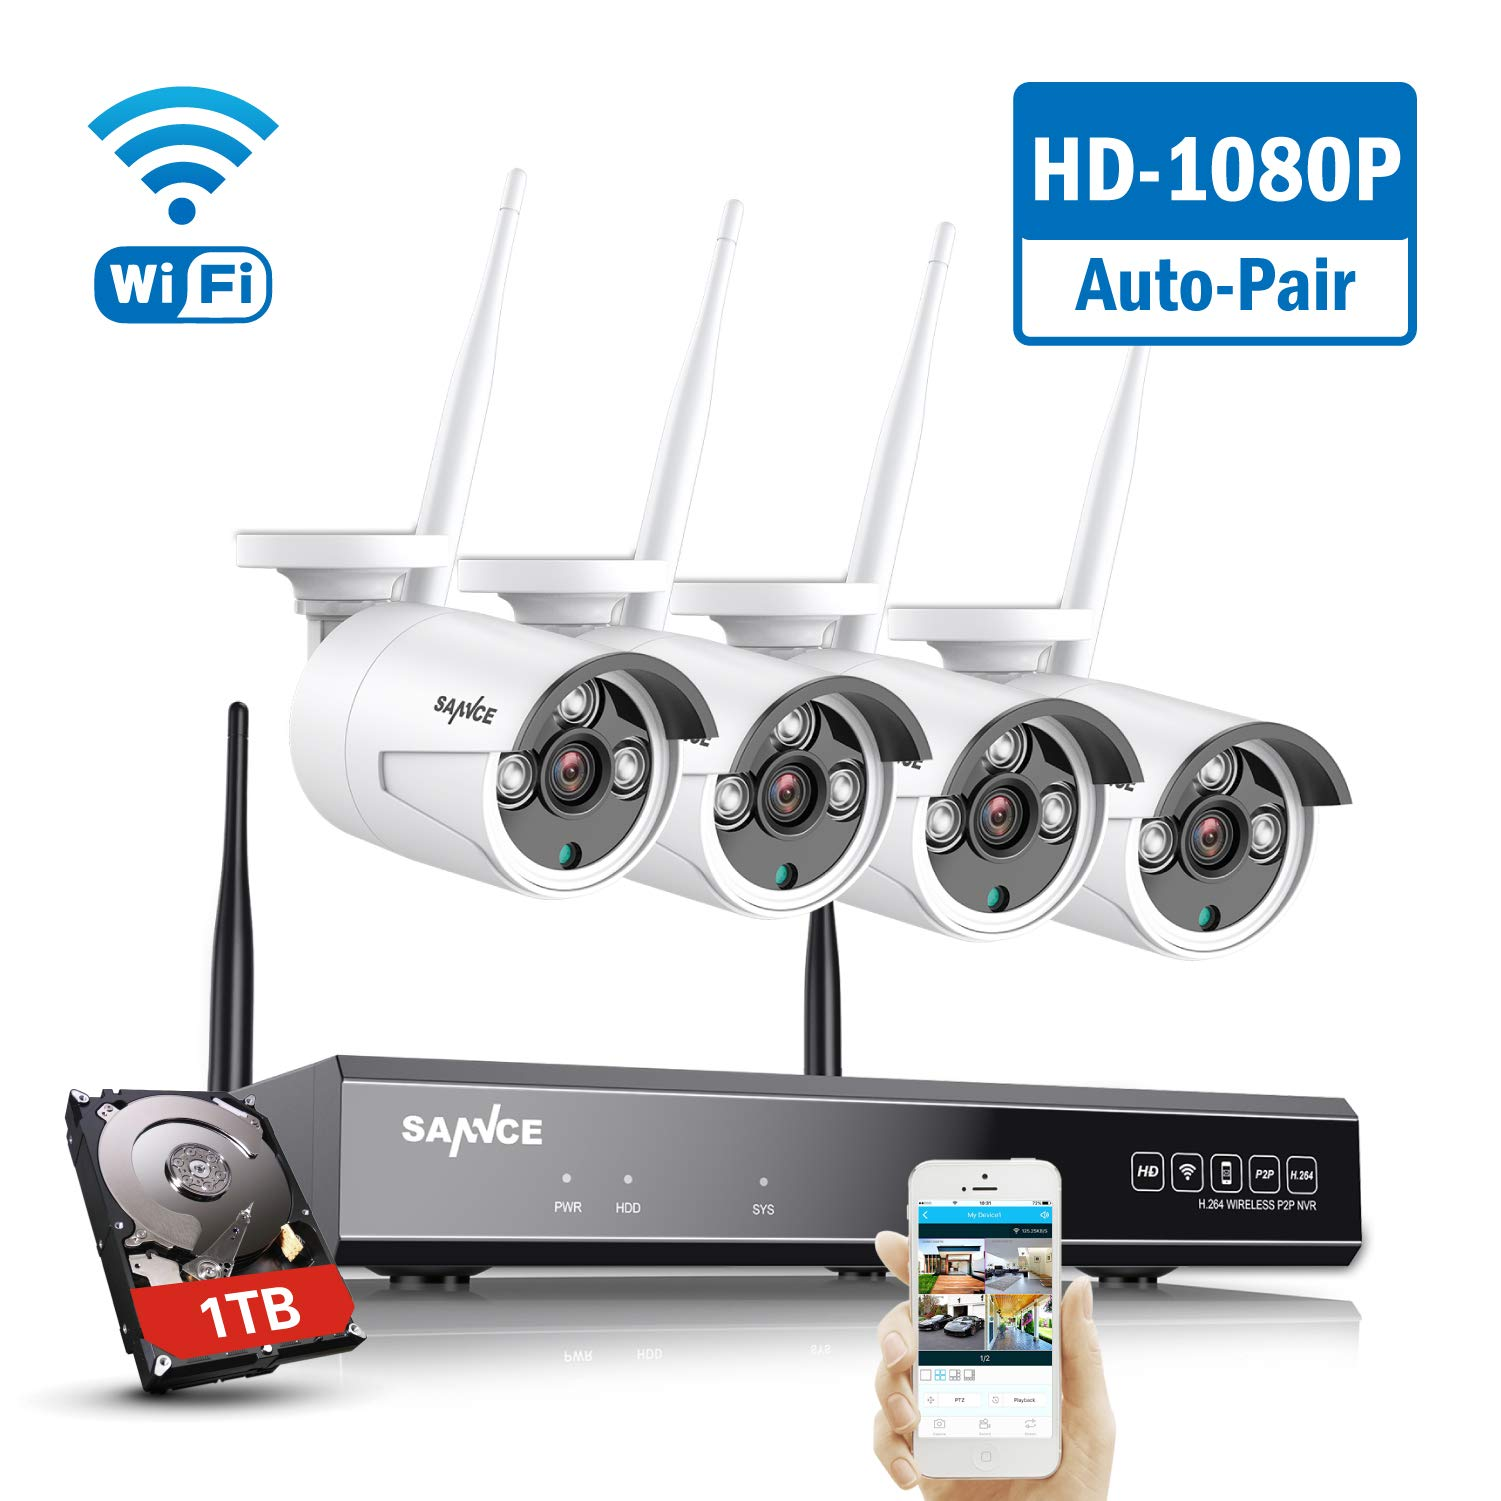 SANNCE Wireless CCTV Camera System 8CH 1080P NVR and 4X 2.0MP Enhanced Signal Outdoor WiFi Security IP Cam